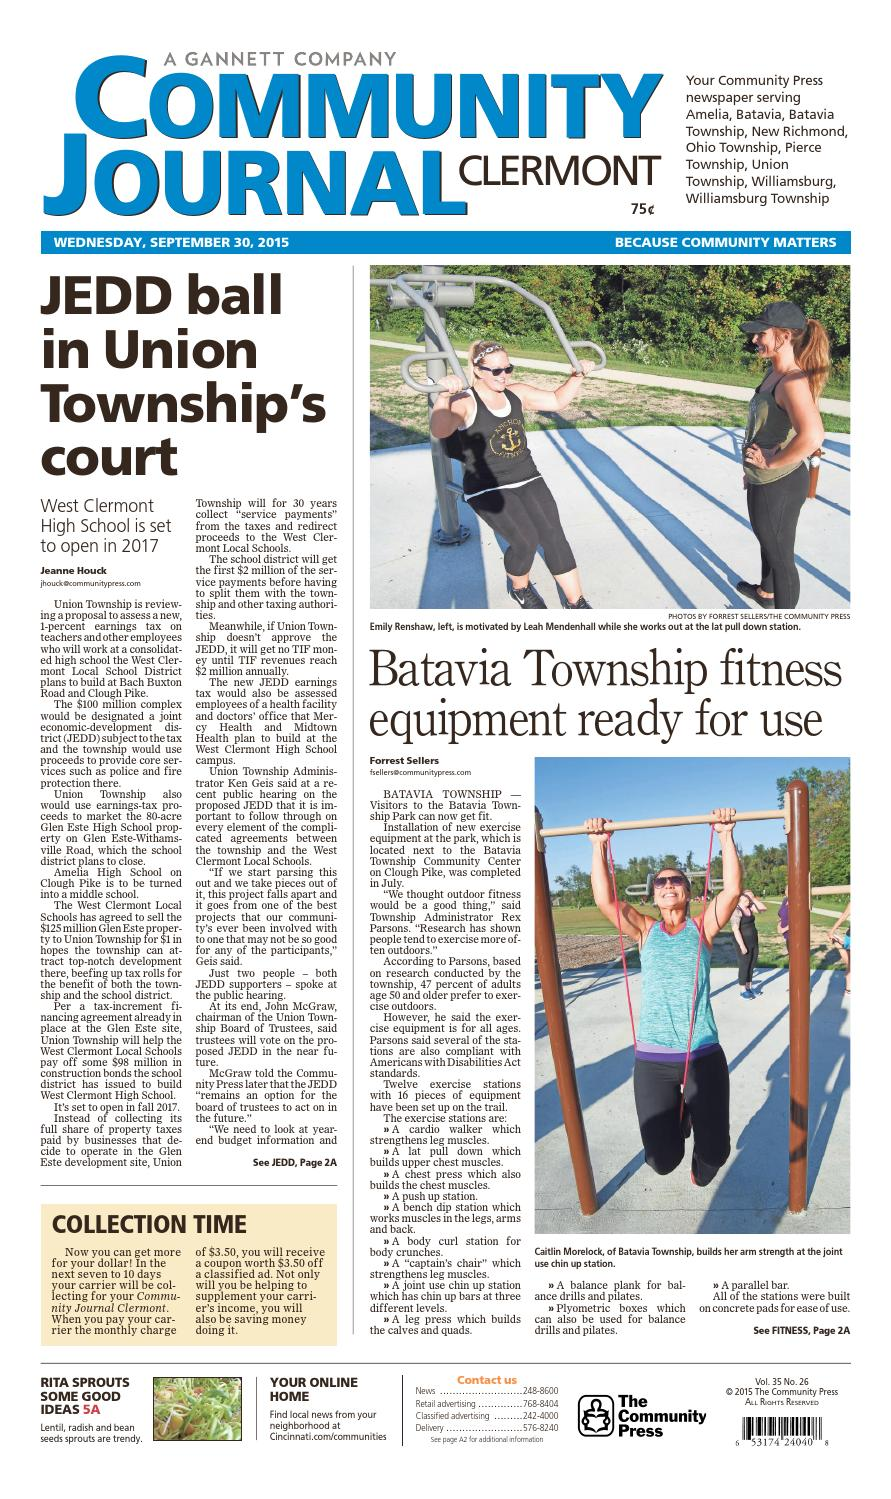 Community journal clermont 093015 by Enquirer Media - issuu on